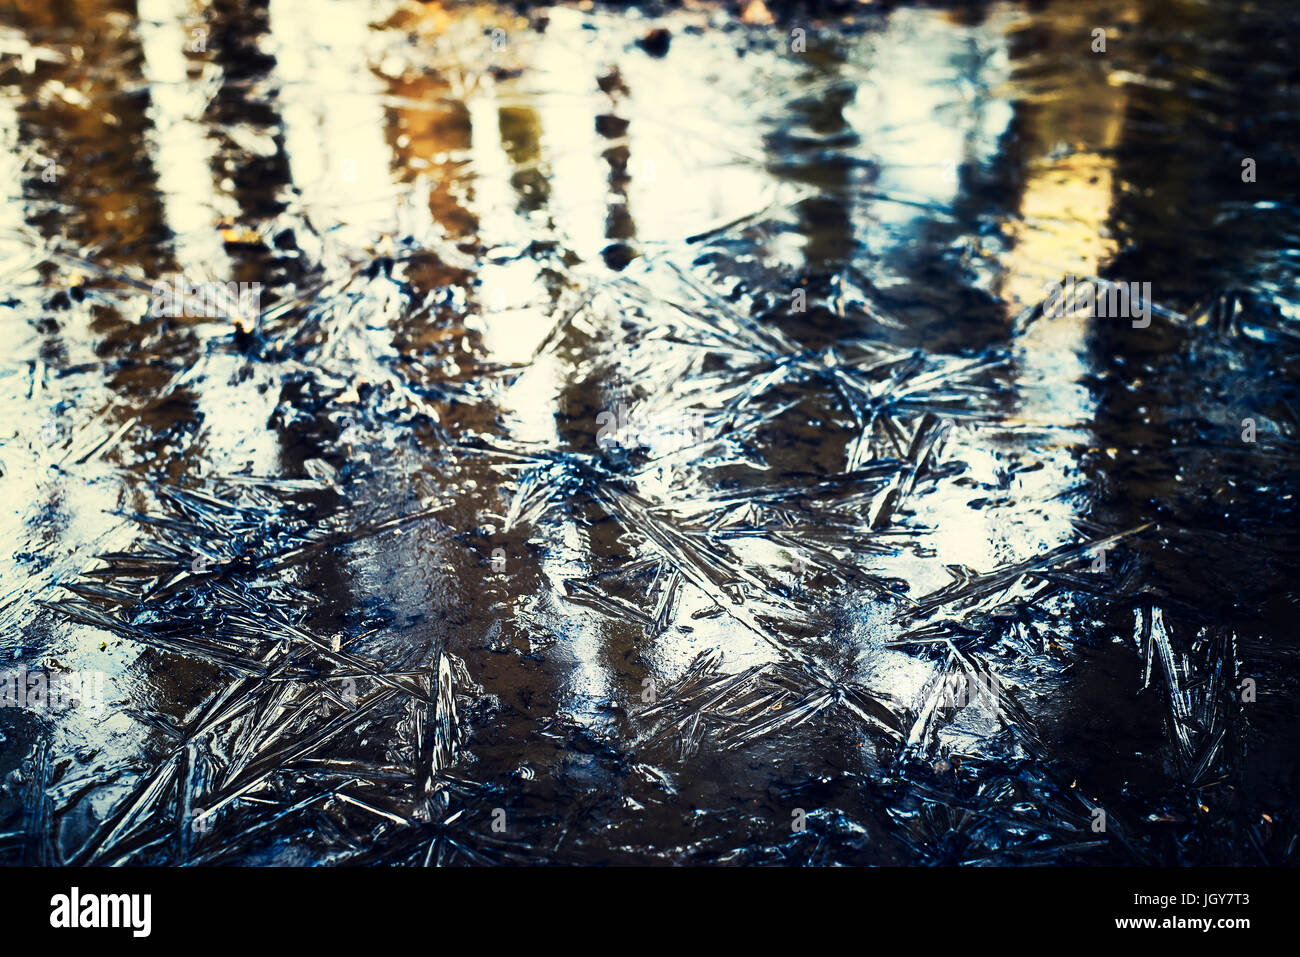 Ice pattern with reflection of trees by sunset - Stock Image